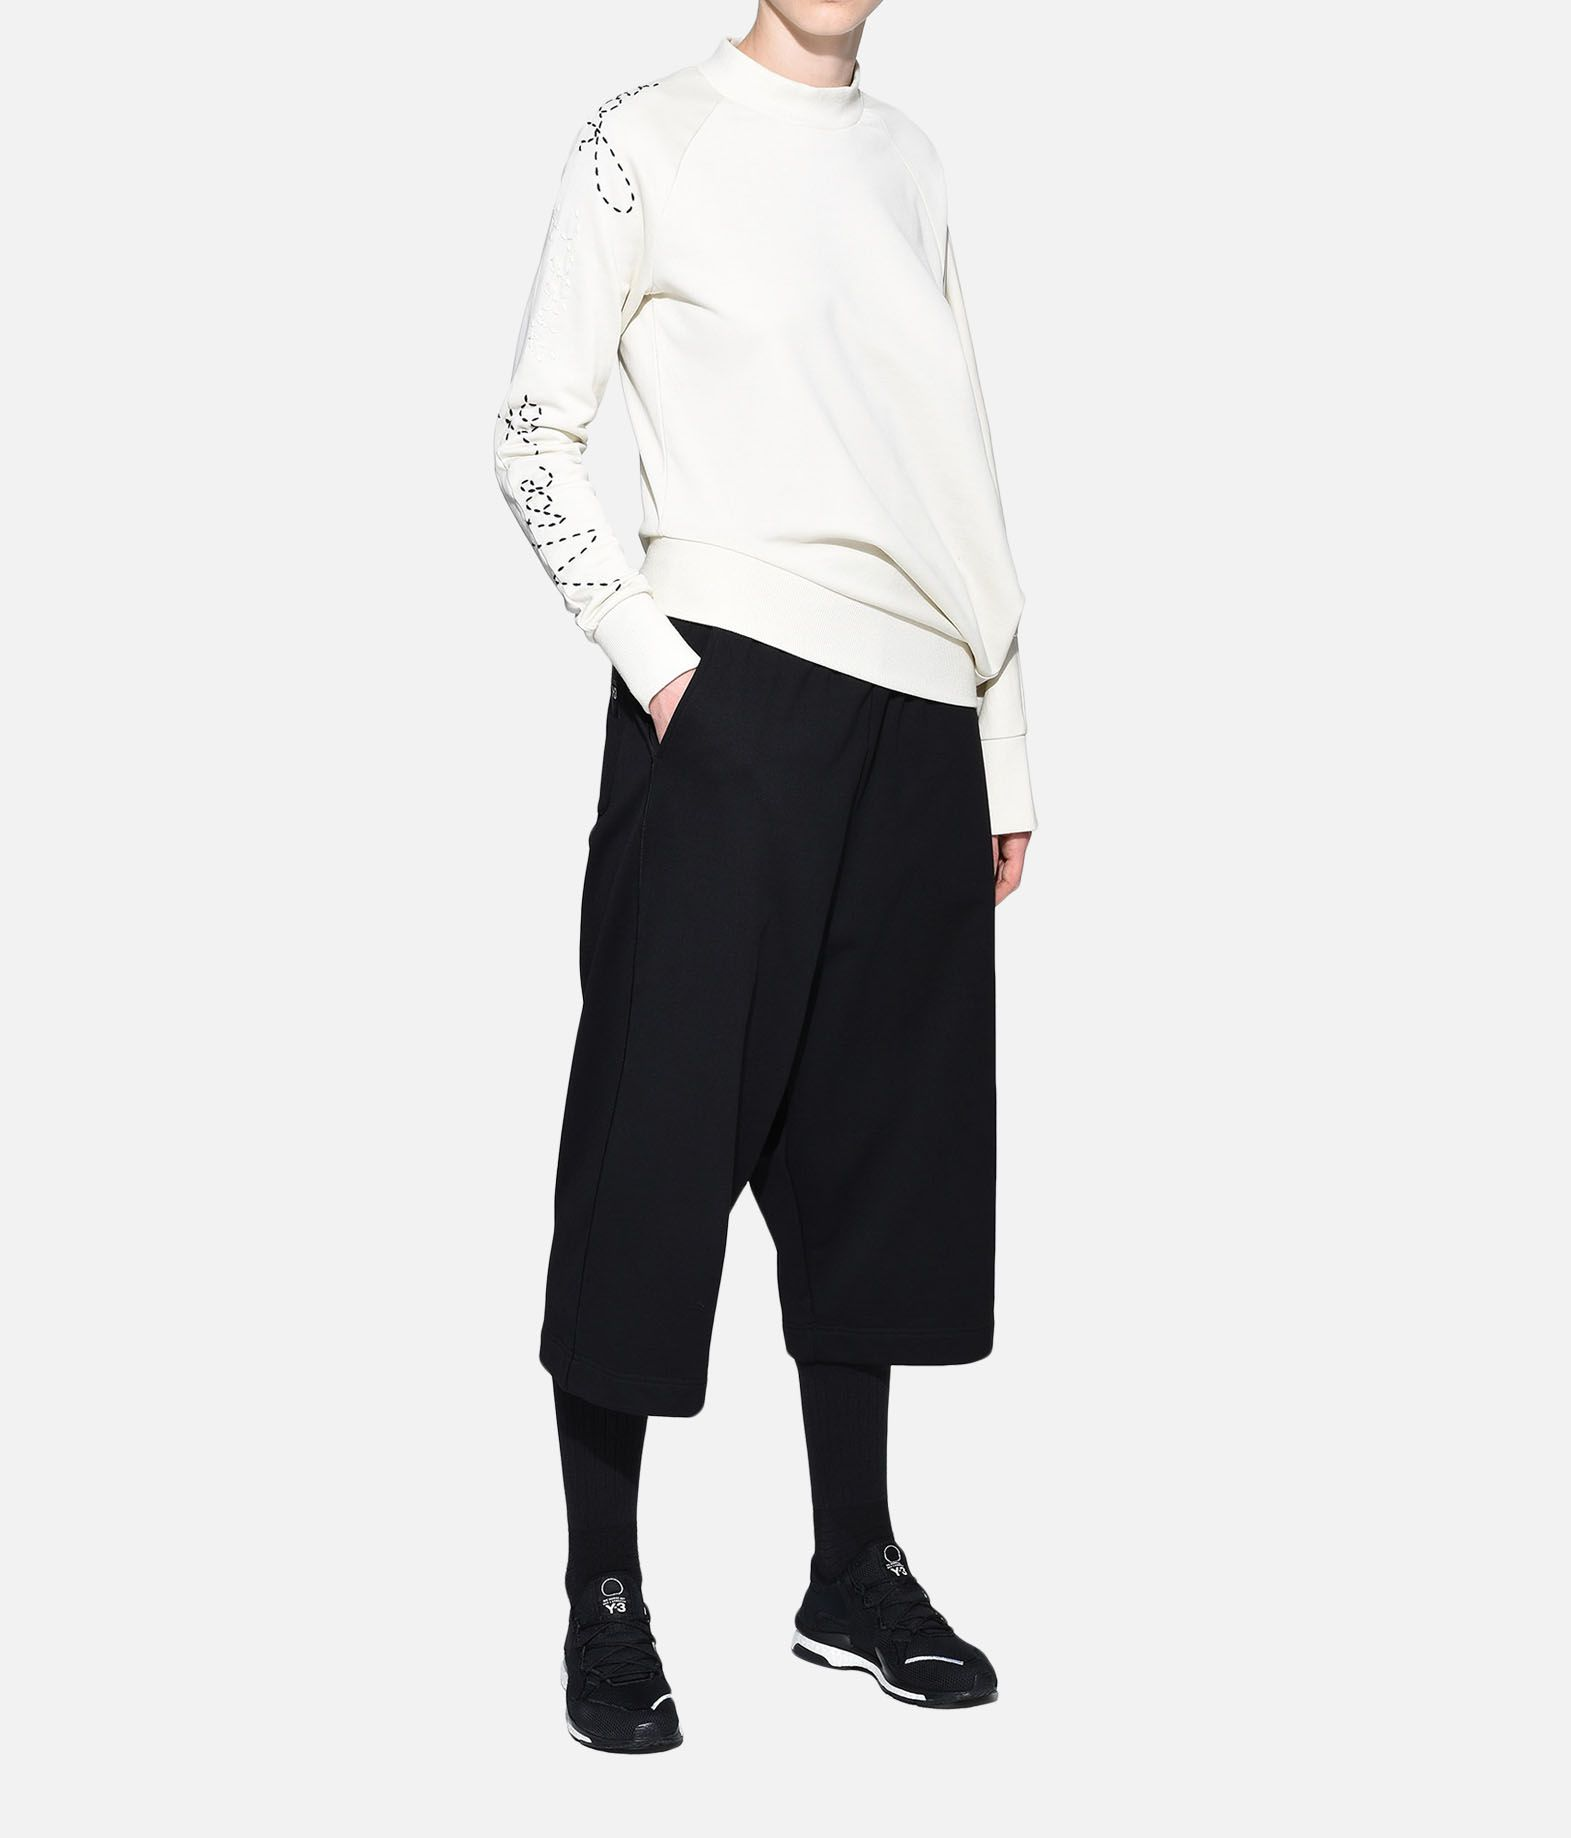 Y-3 Y-3 Sashiko Slogan Sweater Sweatshirt Woman a